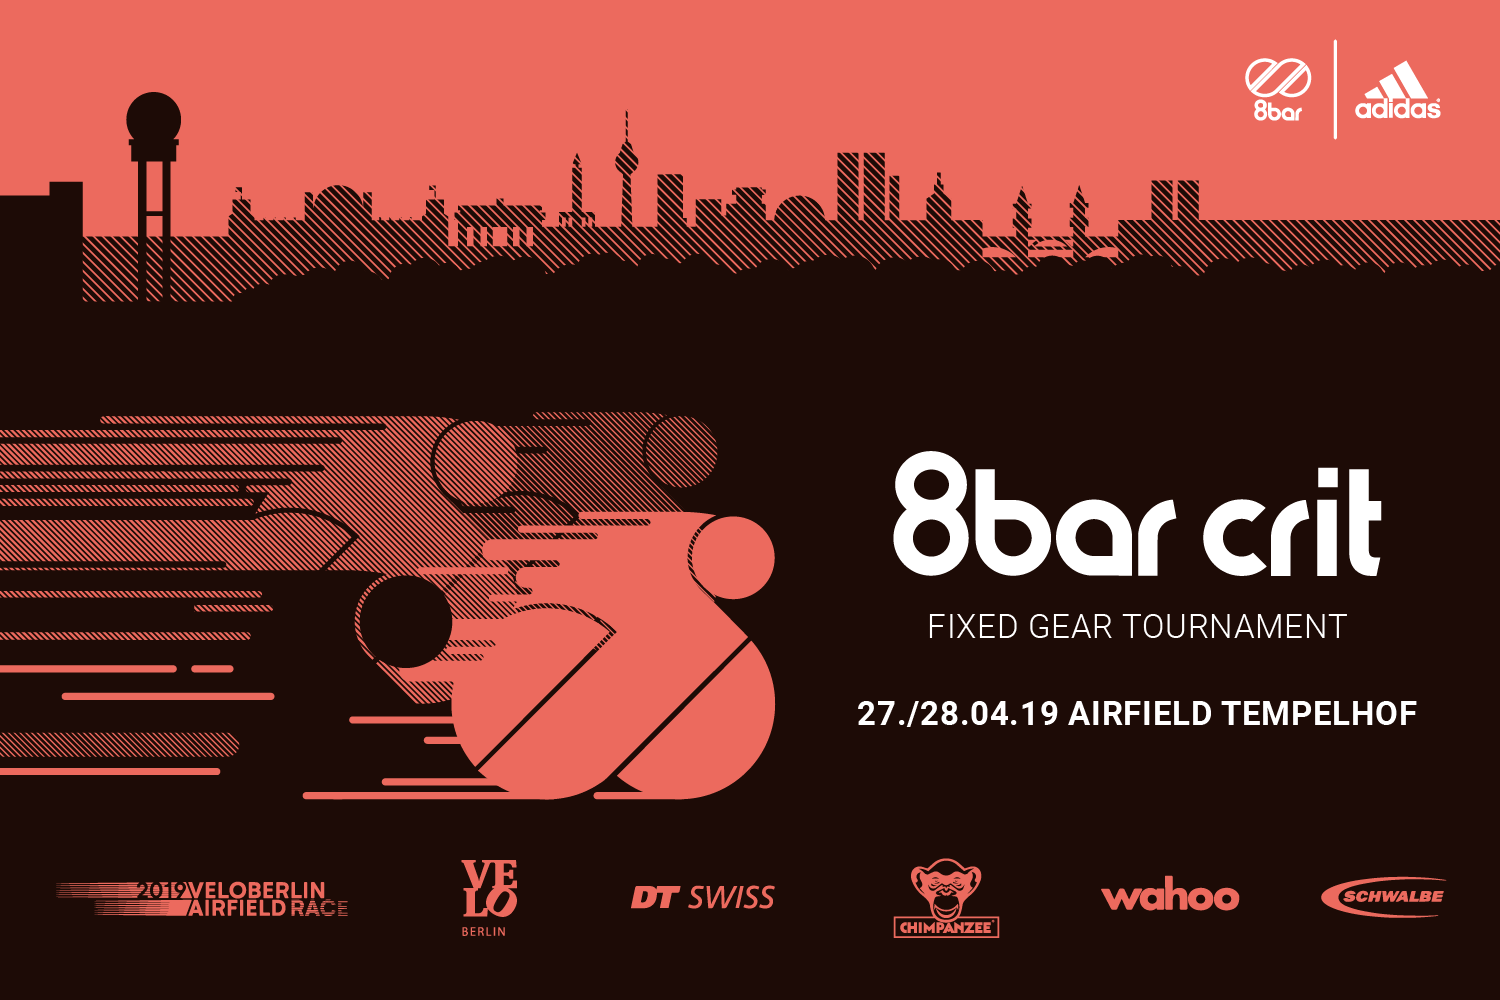 8bar crit 2019 blog header 1500x1000 - 8bar CRIT 2019 - Fixed Gear Tournament